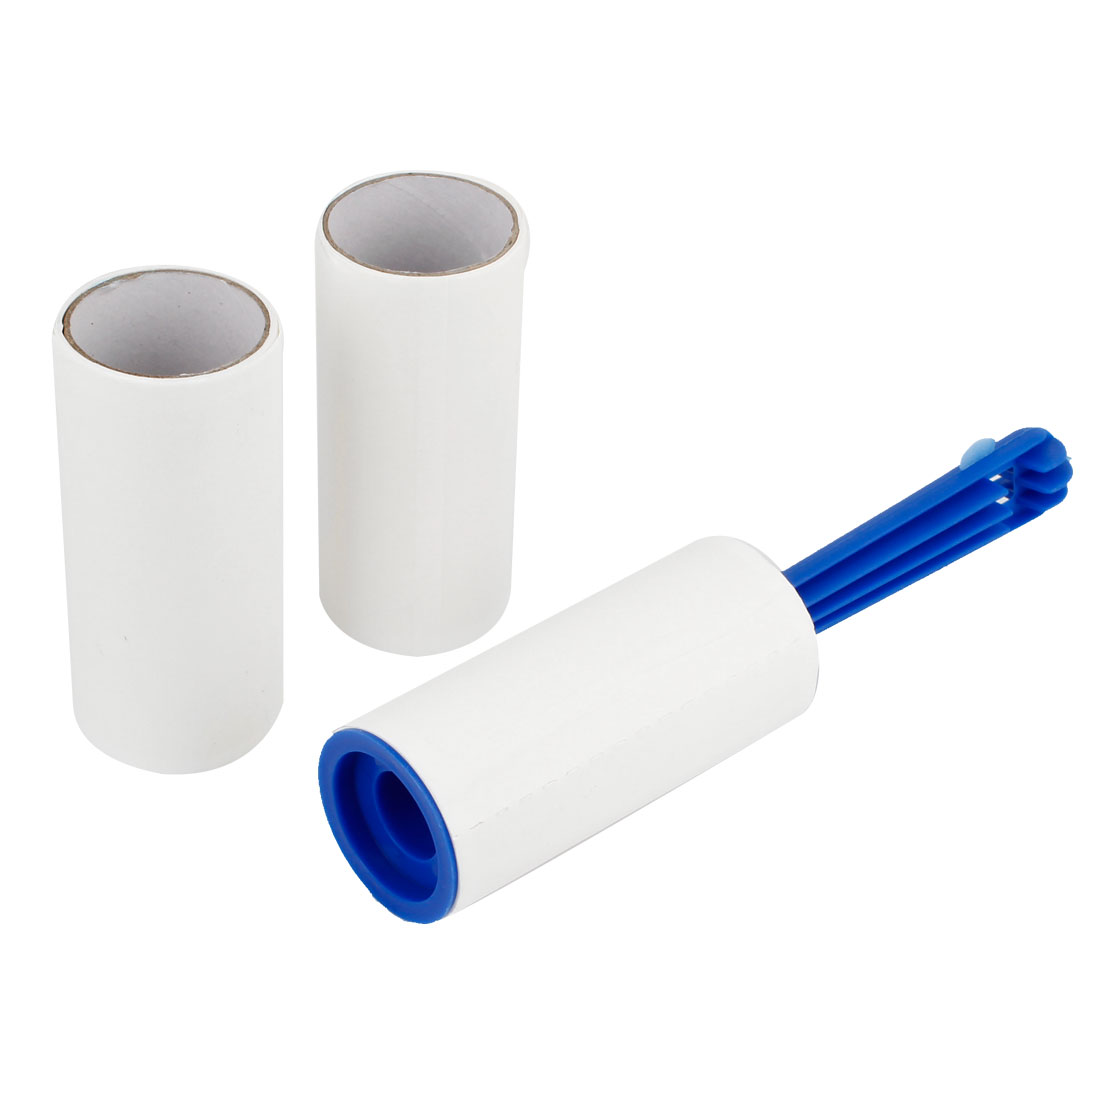 3 Pcs Plastic Handle Dust Hair Self Adhesive Sticky Lint Roller Cleaning Tool